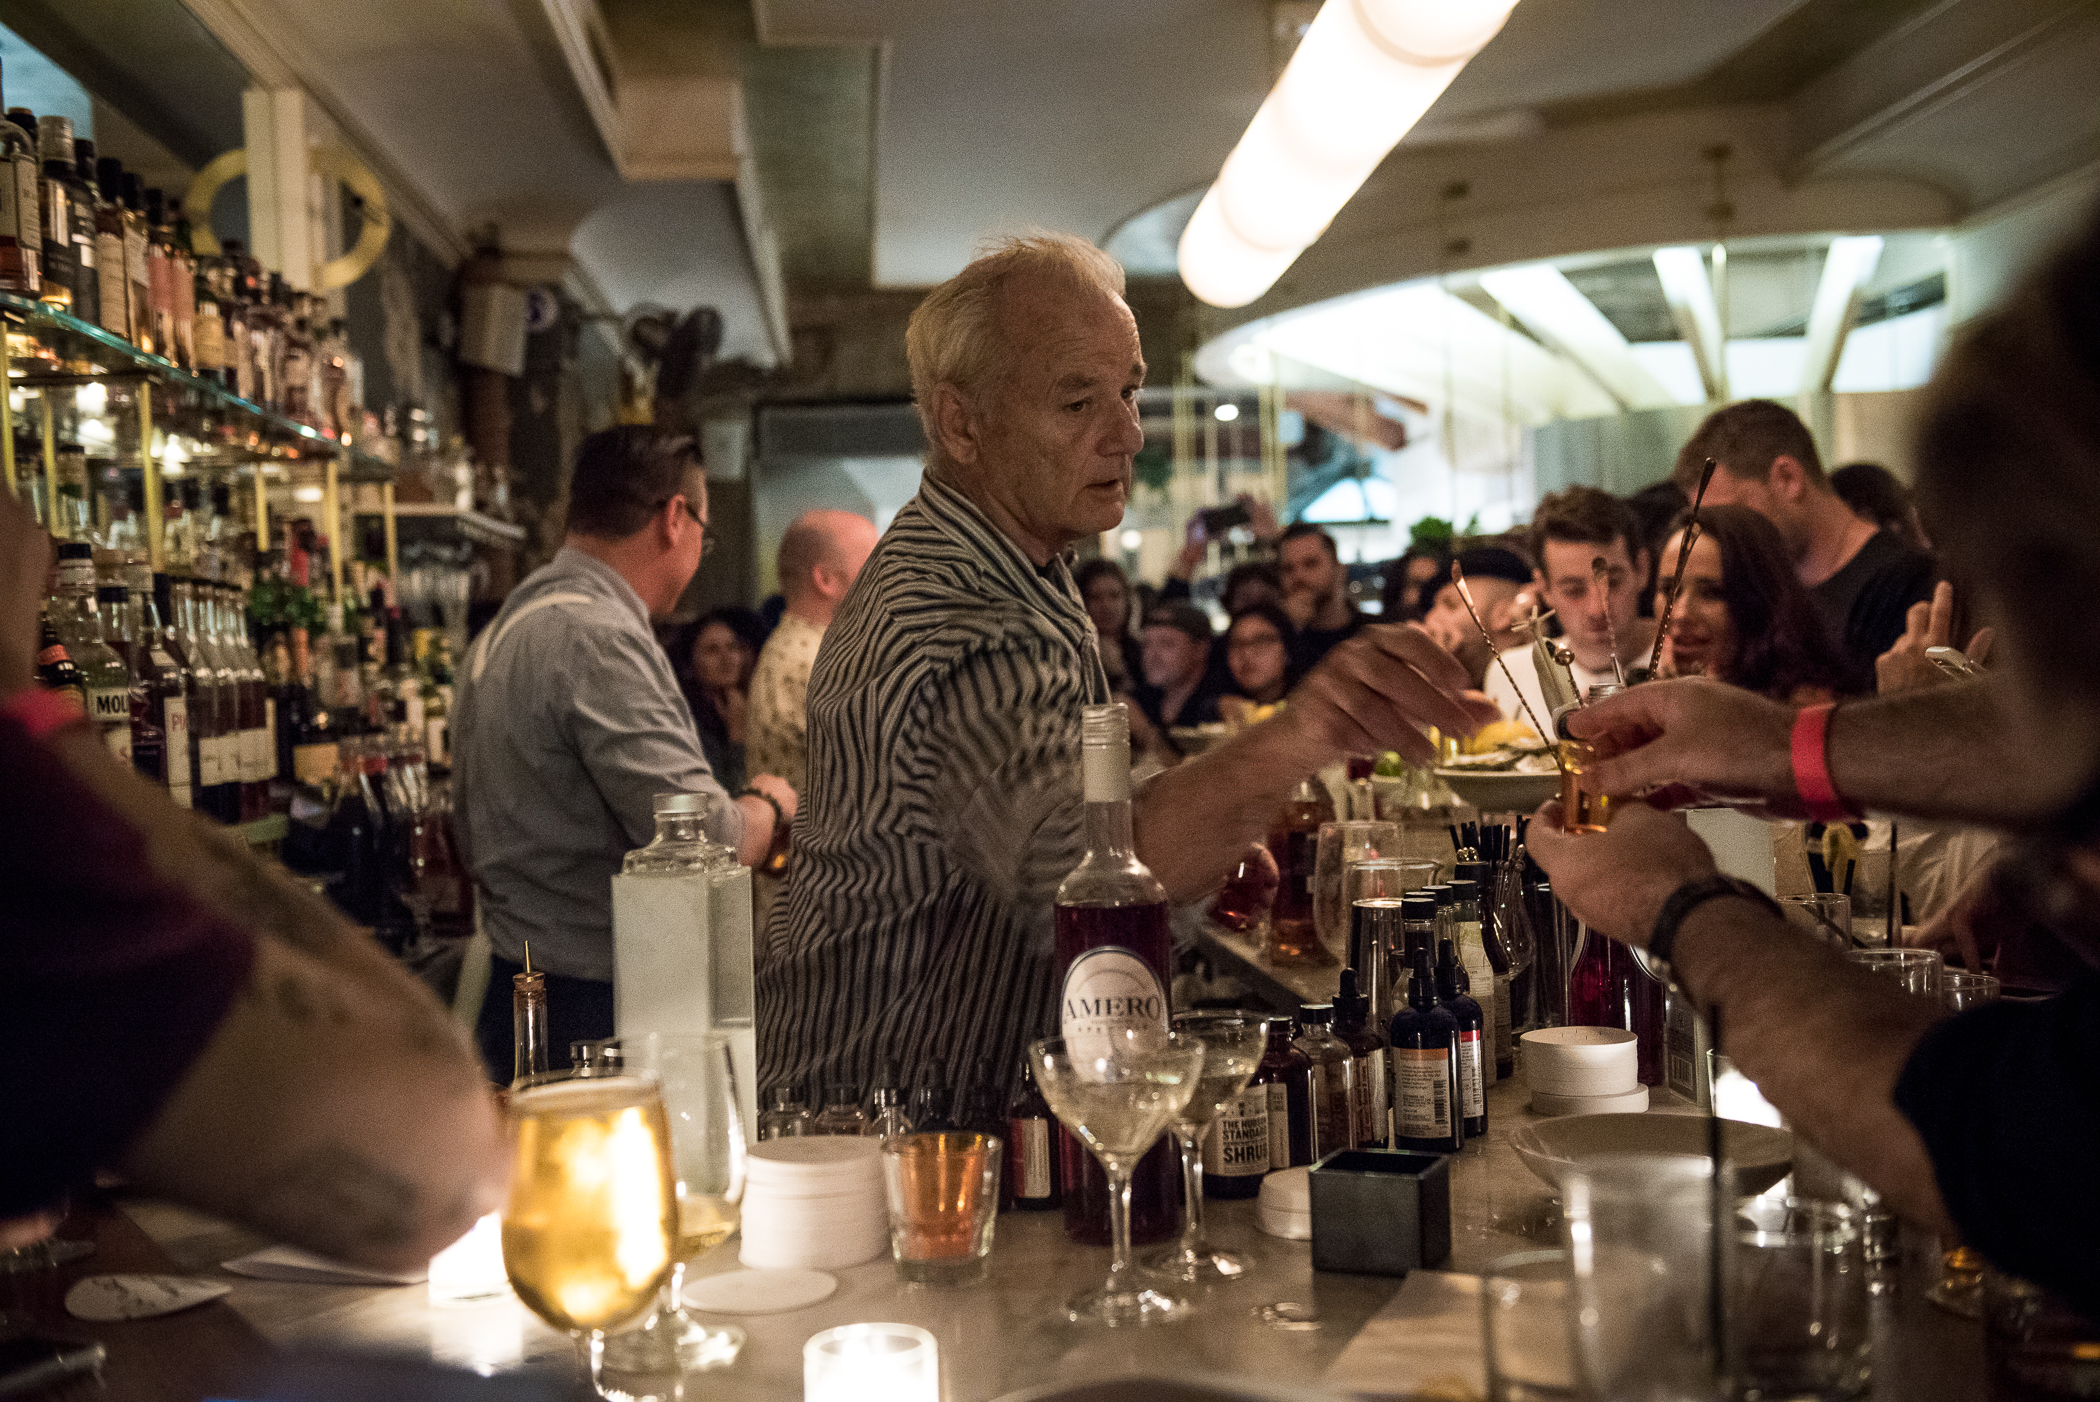 Bill Murray bartends in Brooklyn, at 21 GREENPOINT, 21 Greenpoint Ave in Brooklyn. September 16, 2016. (Photo by Gabi Porter)